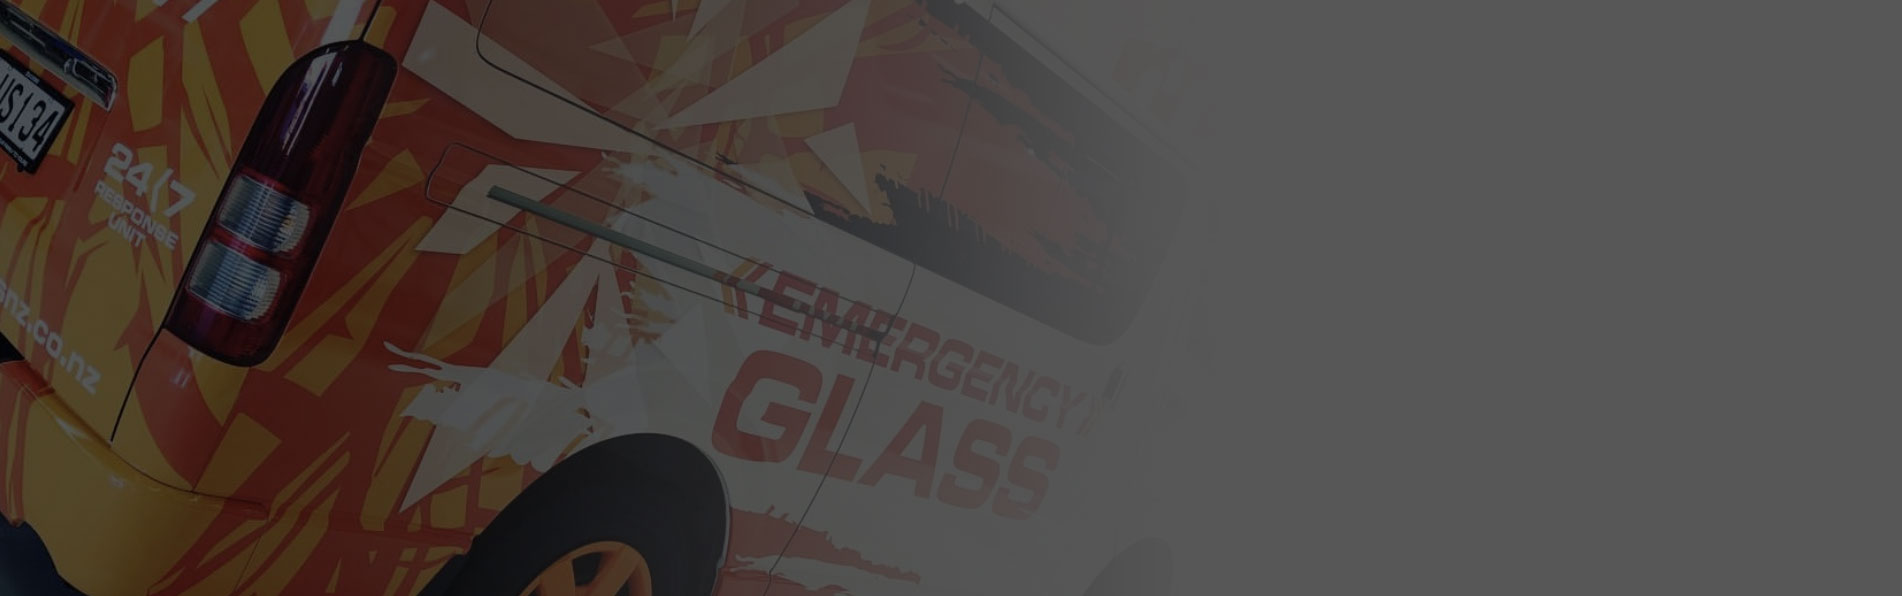 Emergency Residential Glass